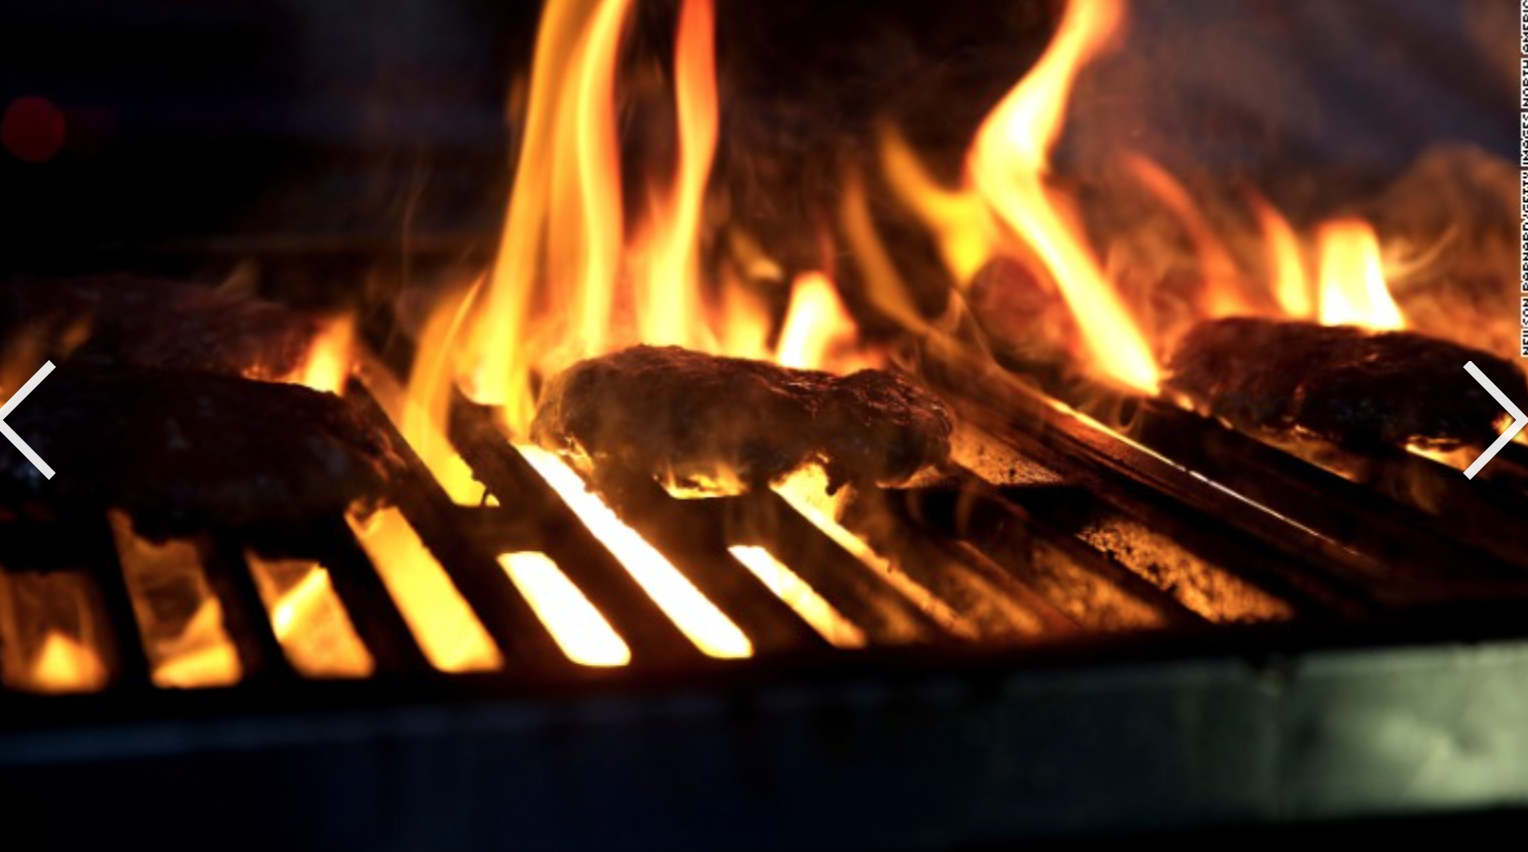 Uh-Oh! Here's What You NEED TO KNOW The Next Time You Want To Throw A Steak On The Grill